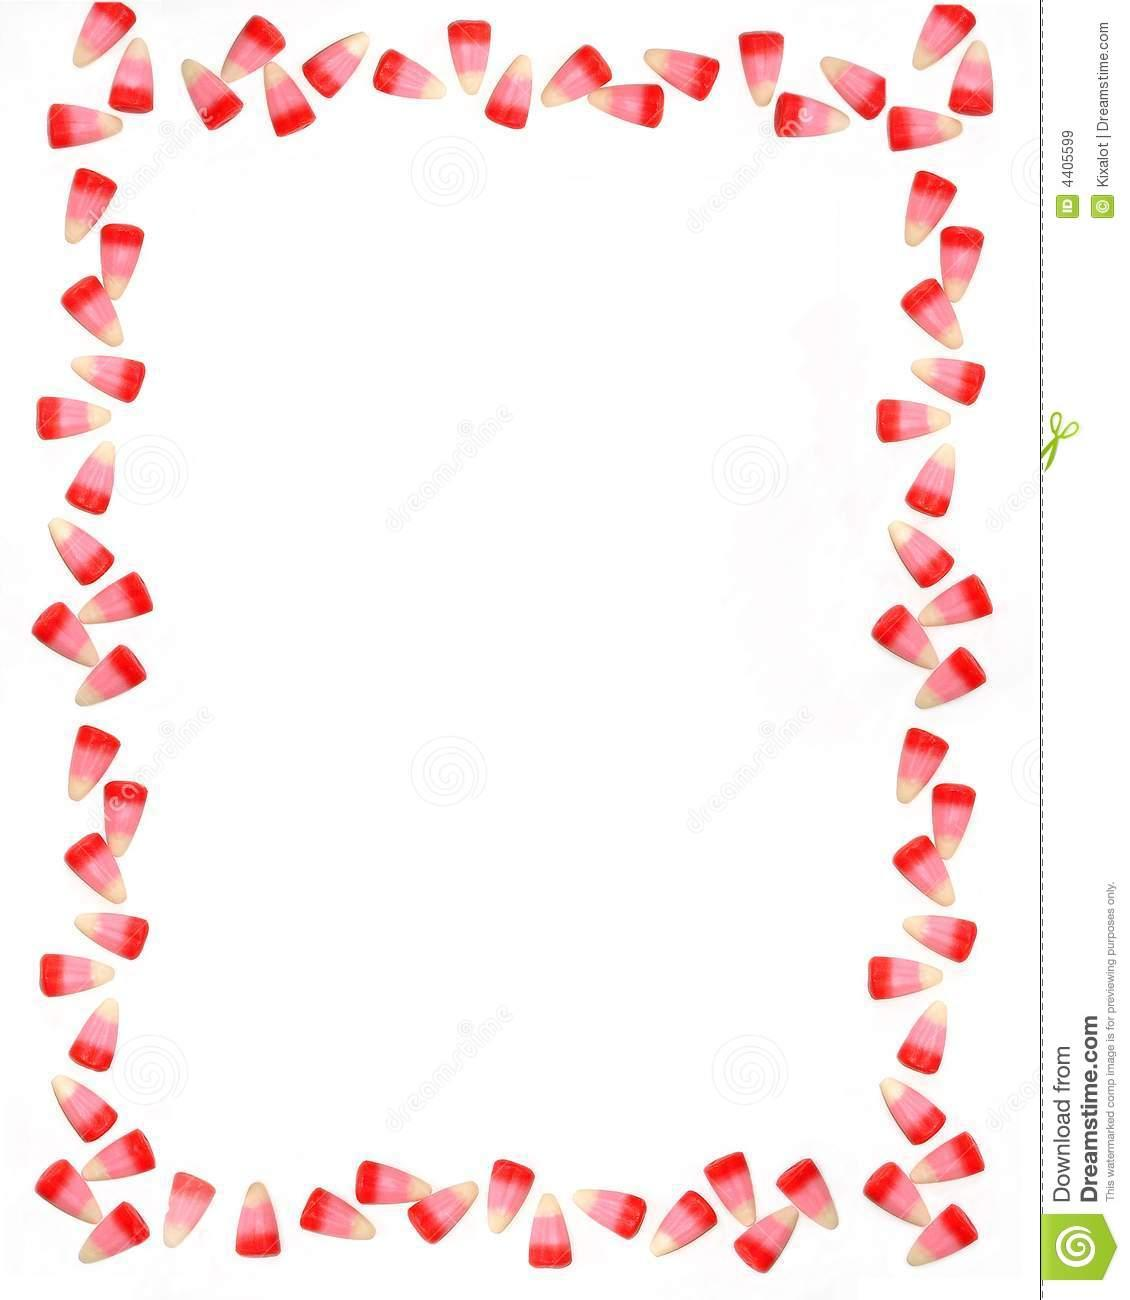 Candy Corn Border Perfect For Valentine S Day Sweet Candy